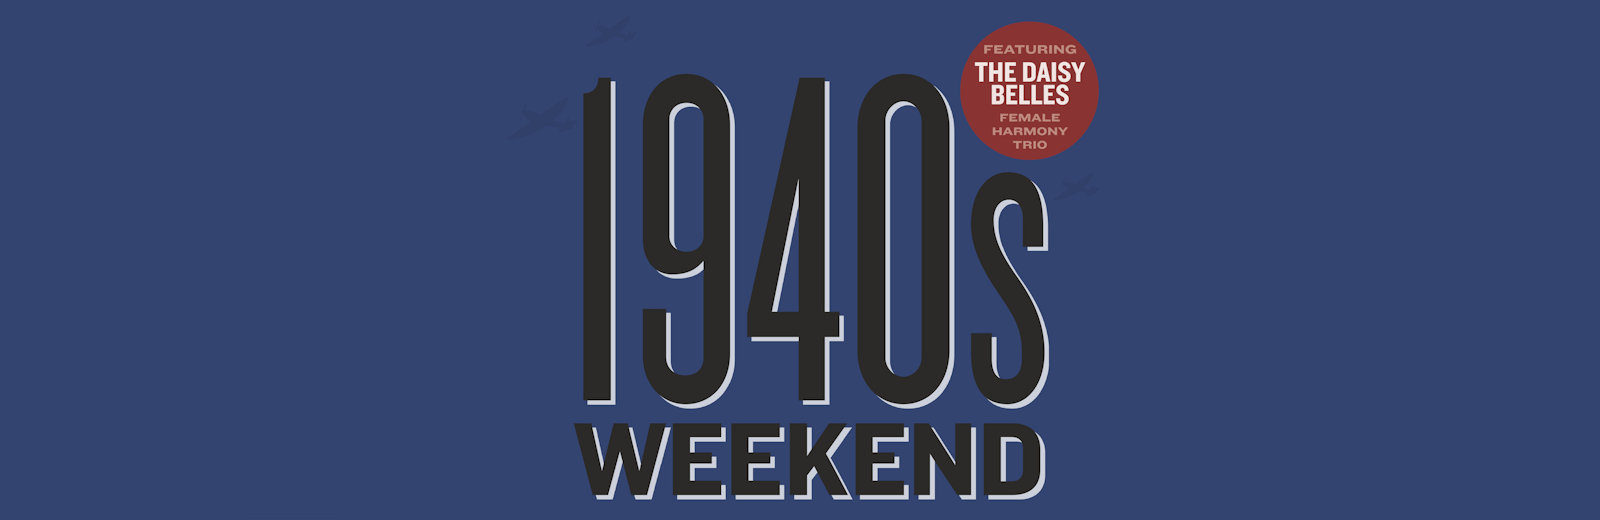 Deepdale 1940s Weekend | 11th to 13th May 2018